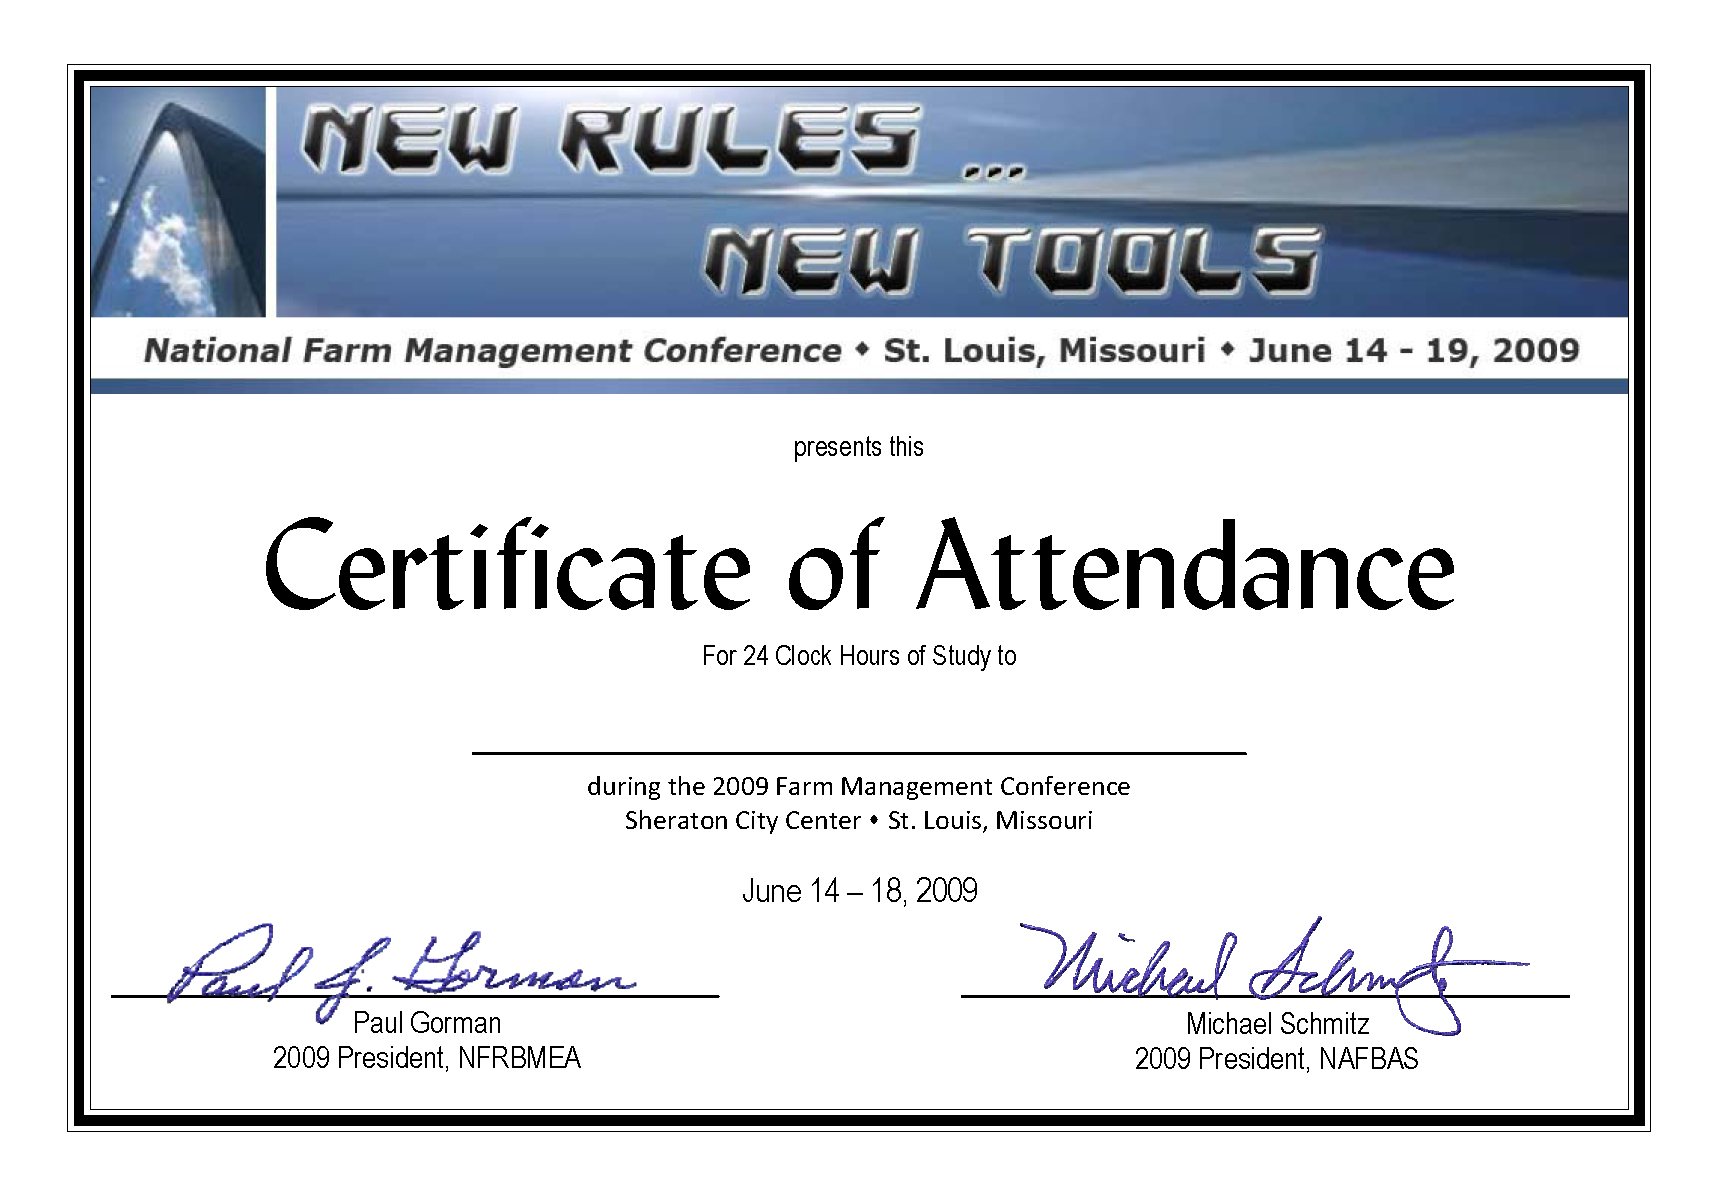 Conference Certificate Of Attendance Template - Great Inside Certificate Of Attendance Conference Template